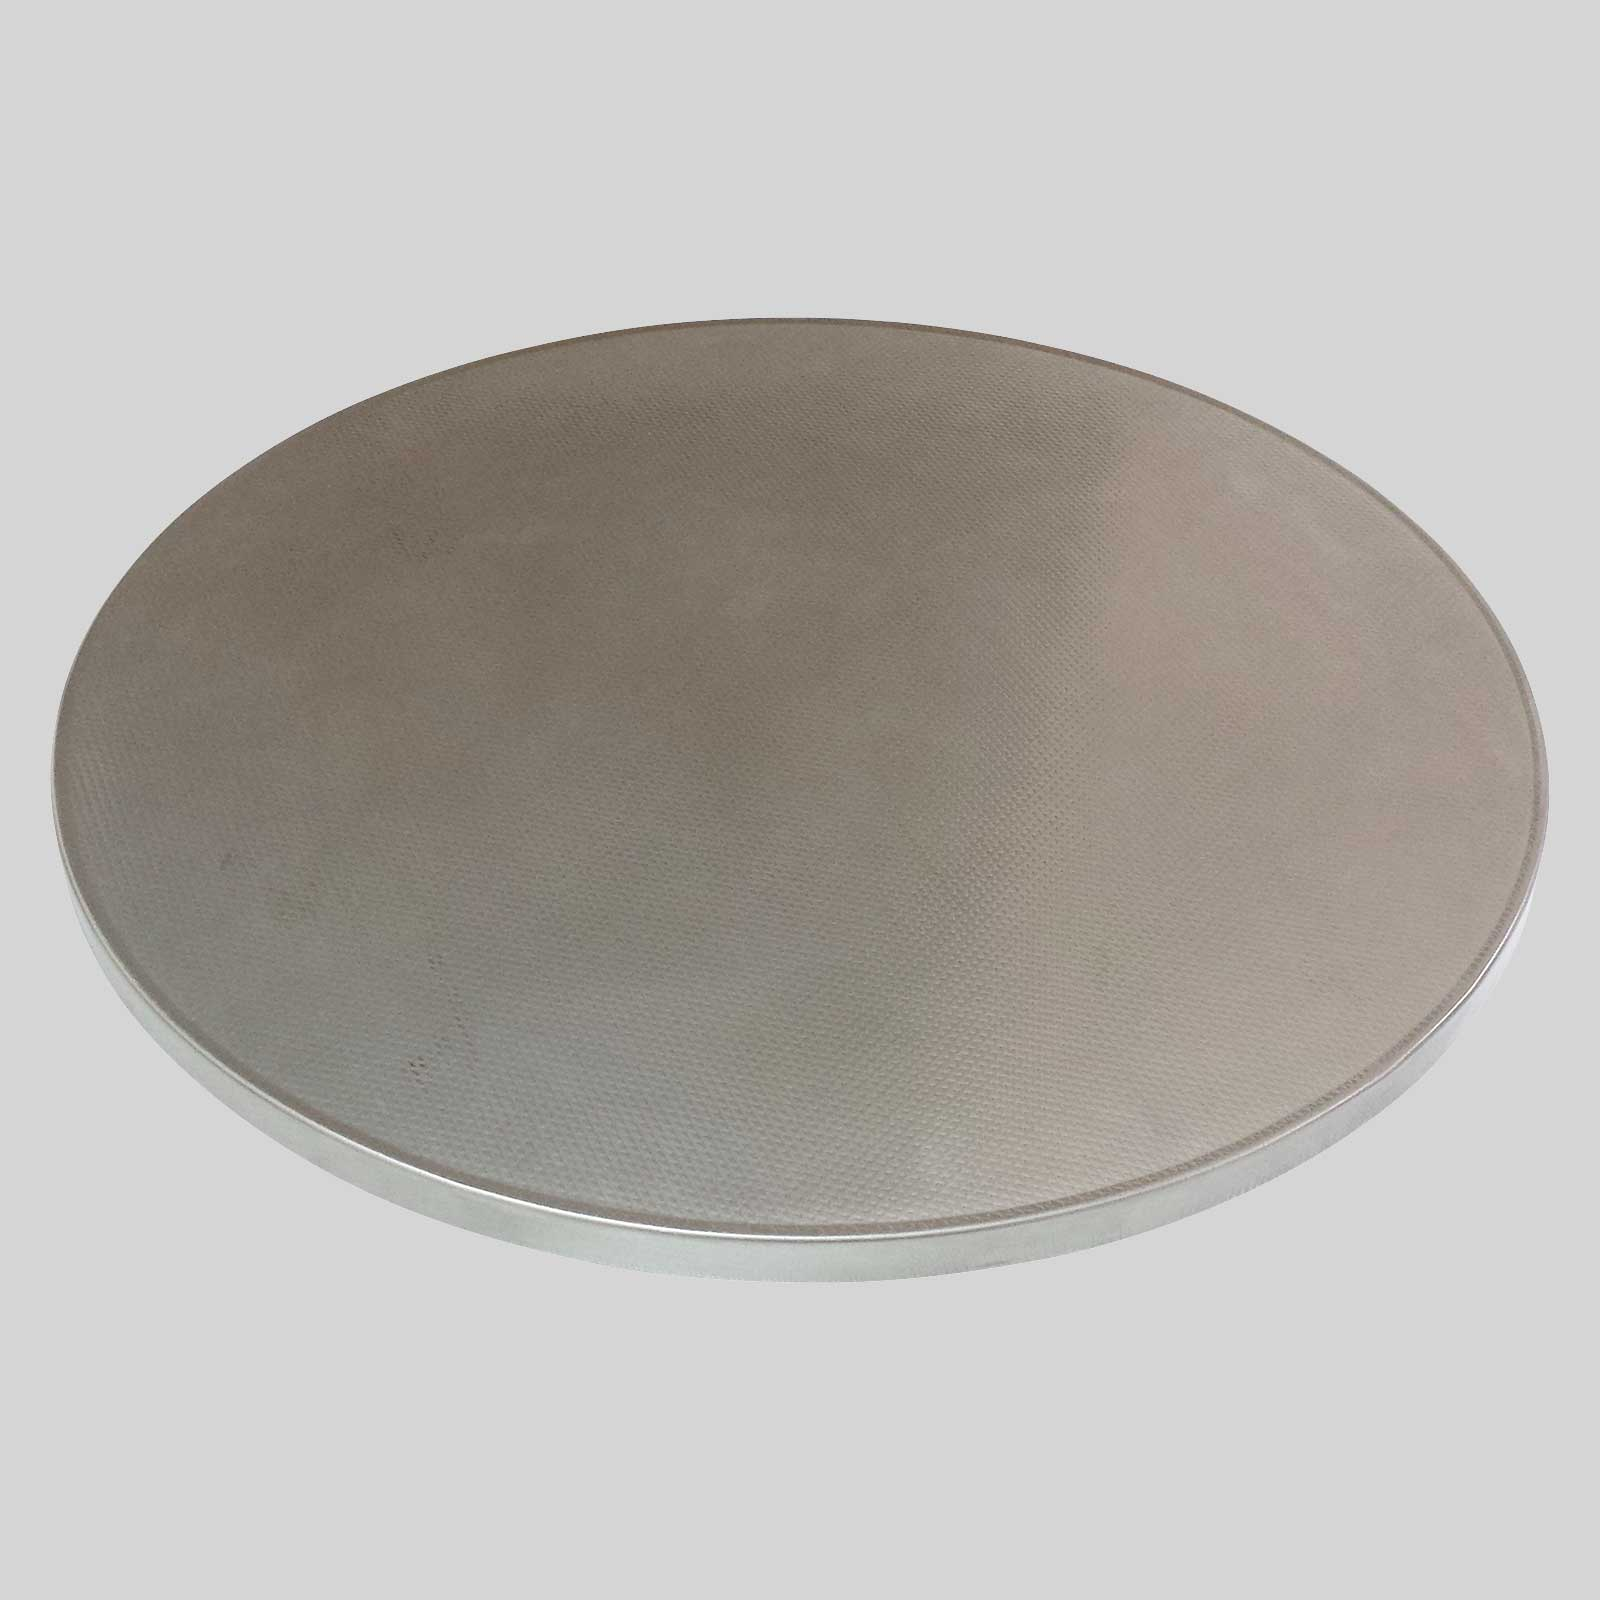 Stainless Steel Table Top  Round